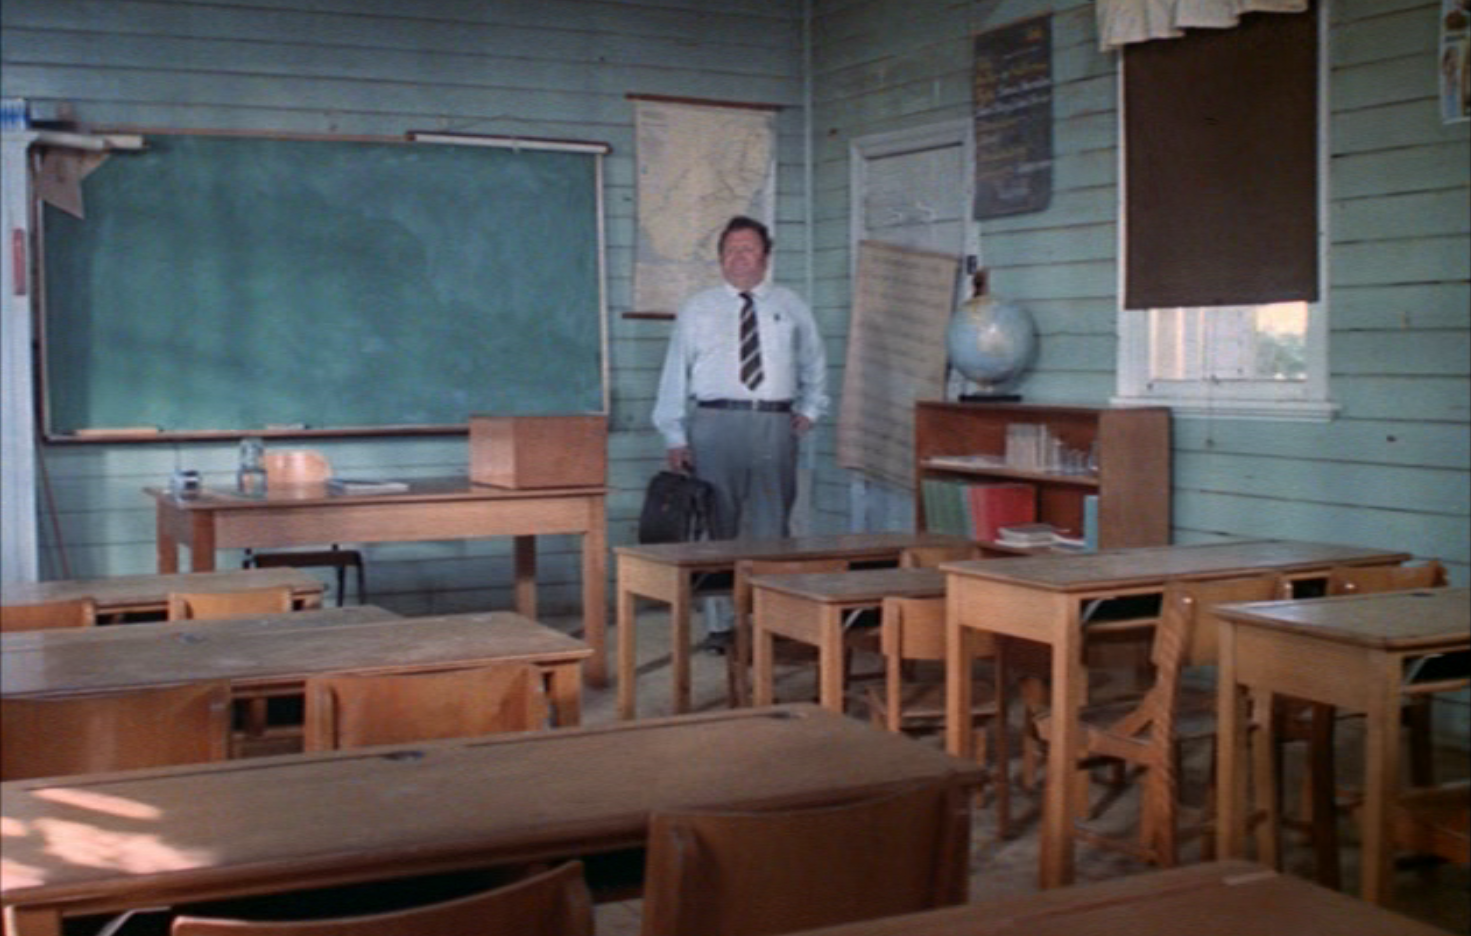 Stanley Evans (Harry Secombe) inside the Kookaburra Springs school building. Wongalea Public School building looks pretty much the same, now at its permanent home at the Henry Parkes Centre. Source: Sunstruck [Motion picture; DVD release] England: Studiocanal, 1972, 0:16:21